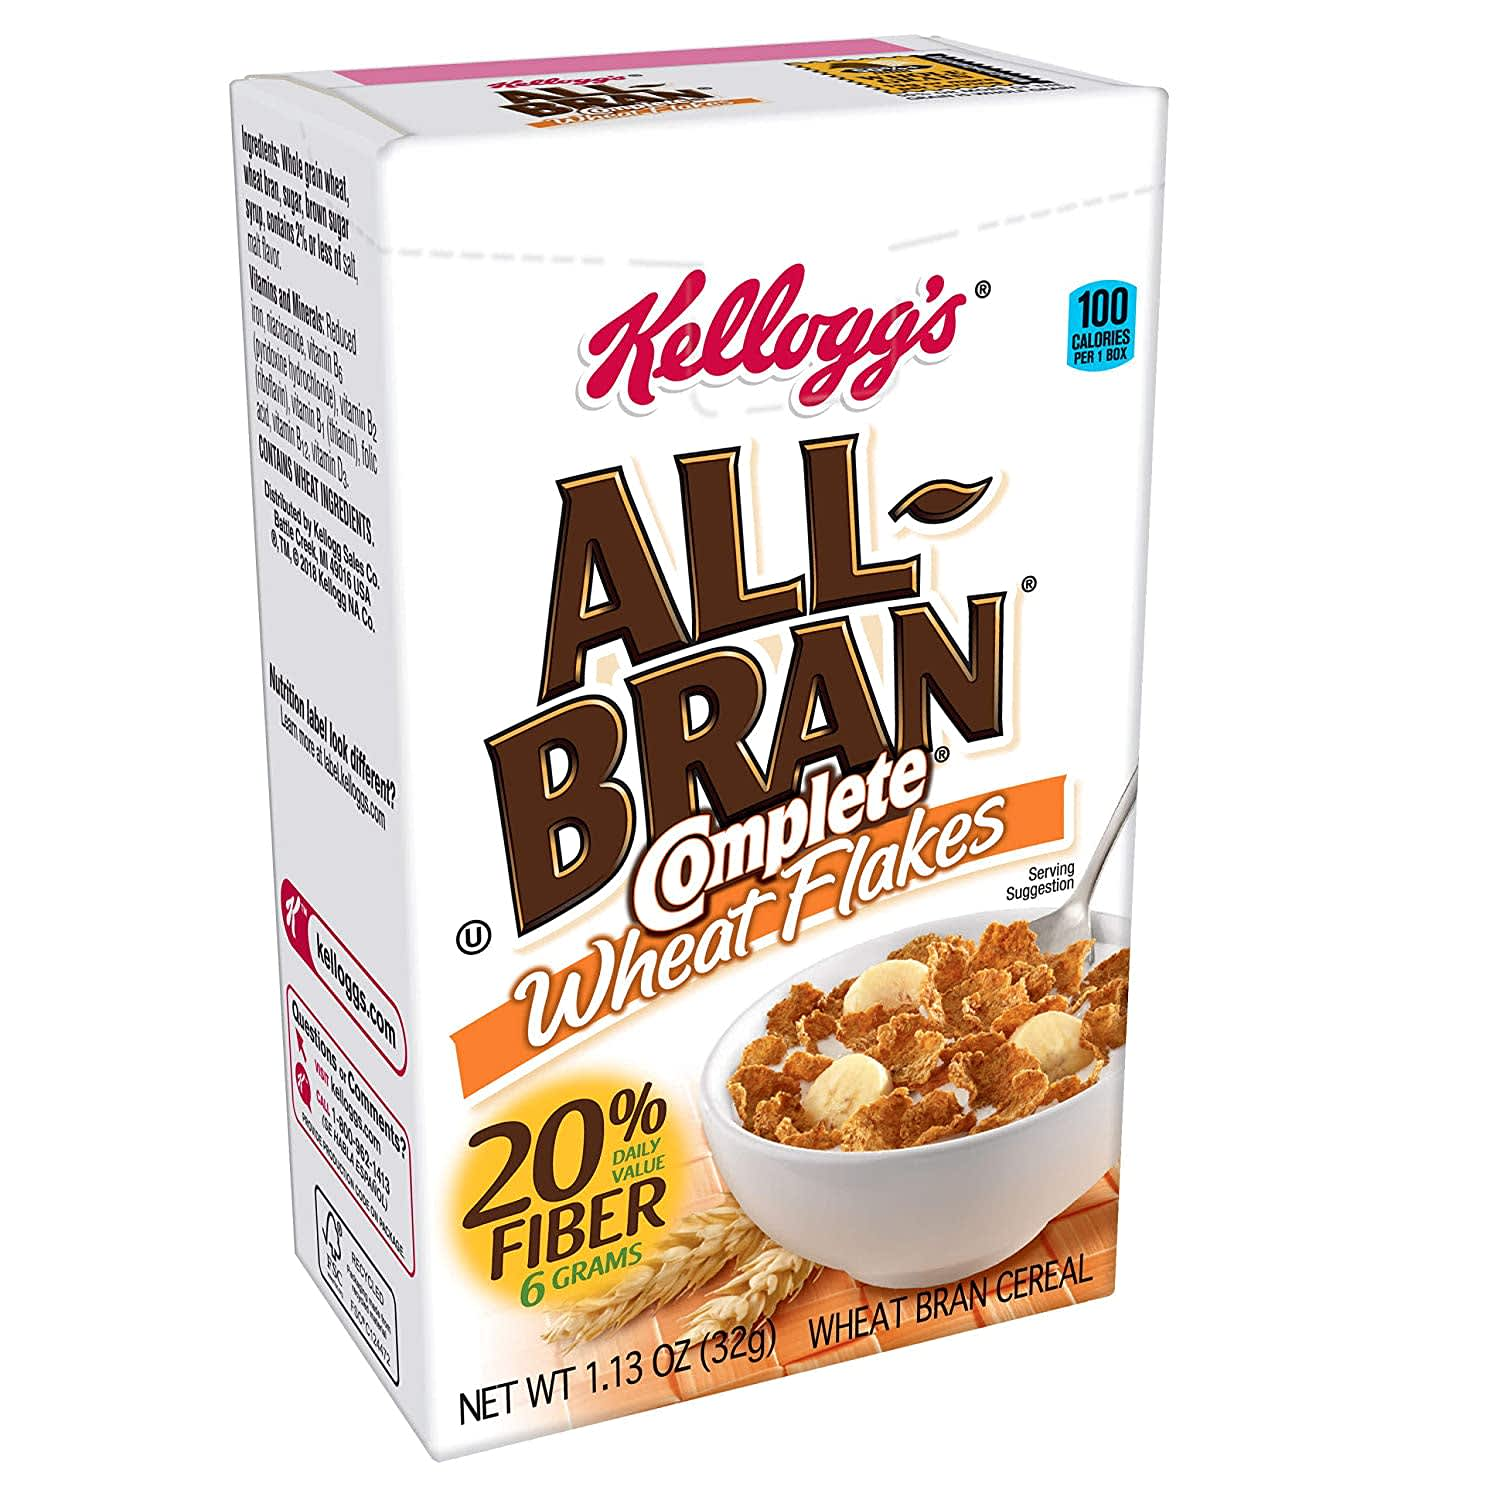 Kellogg's All-Bran Complete Wheat Flakes 70-Pack